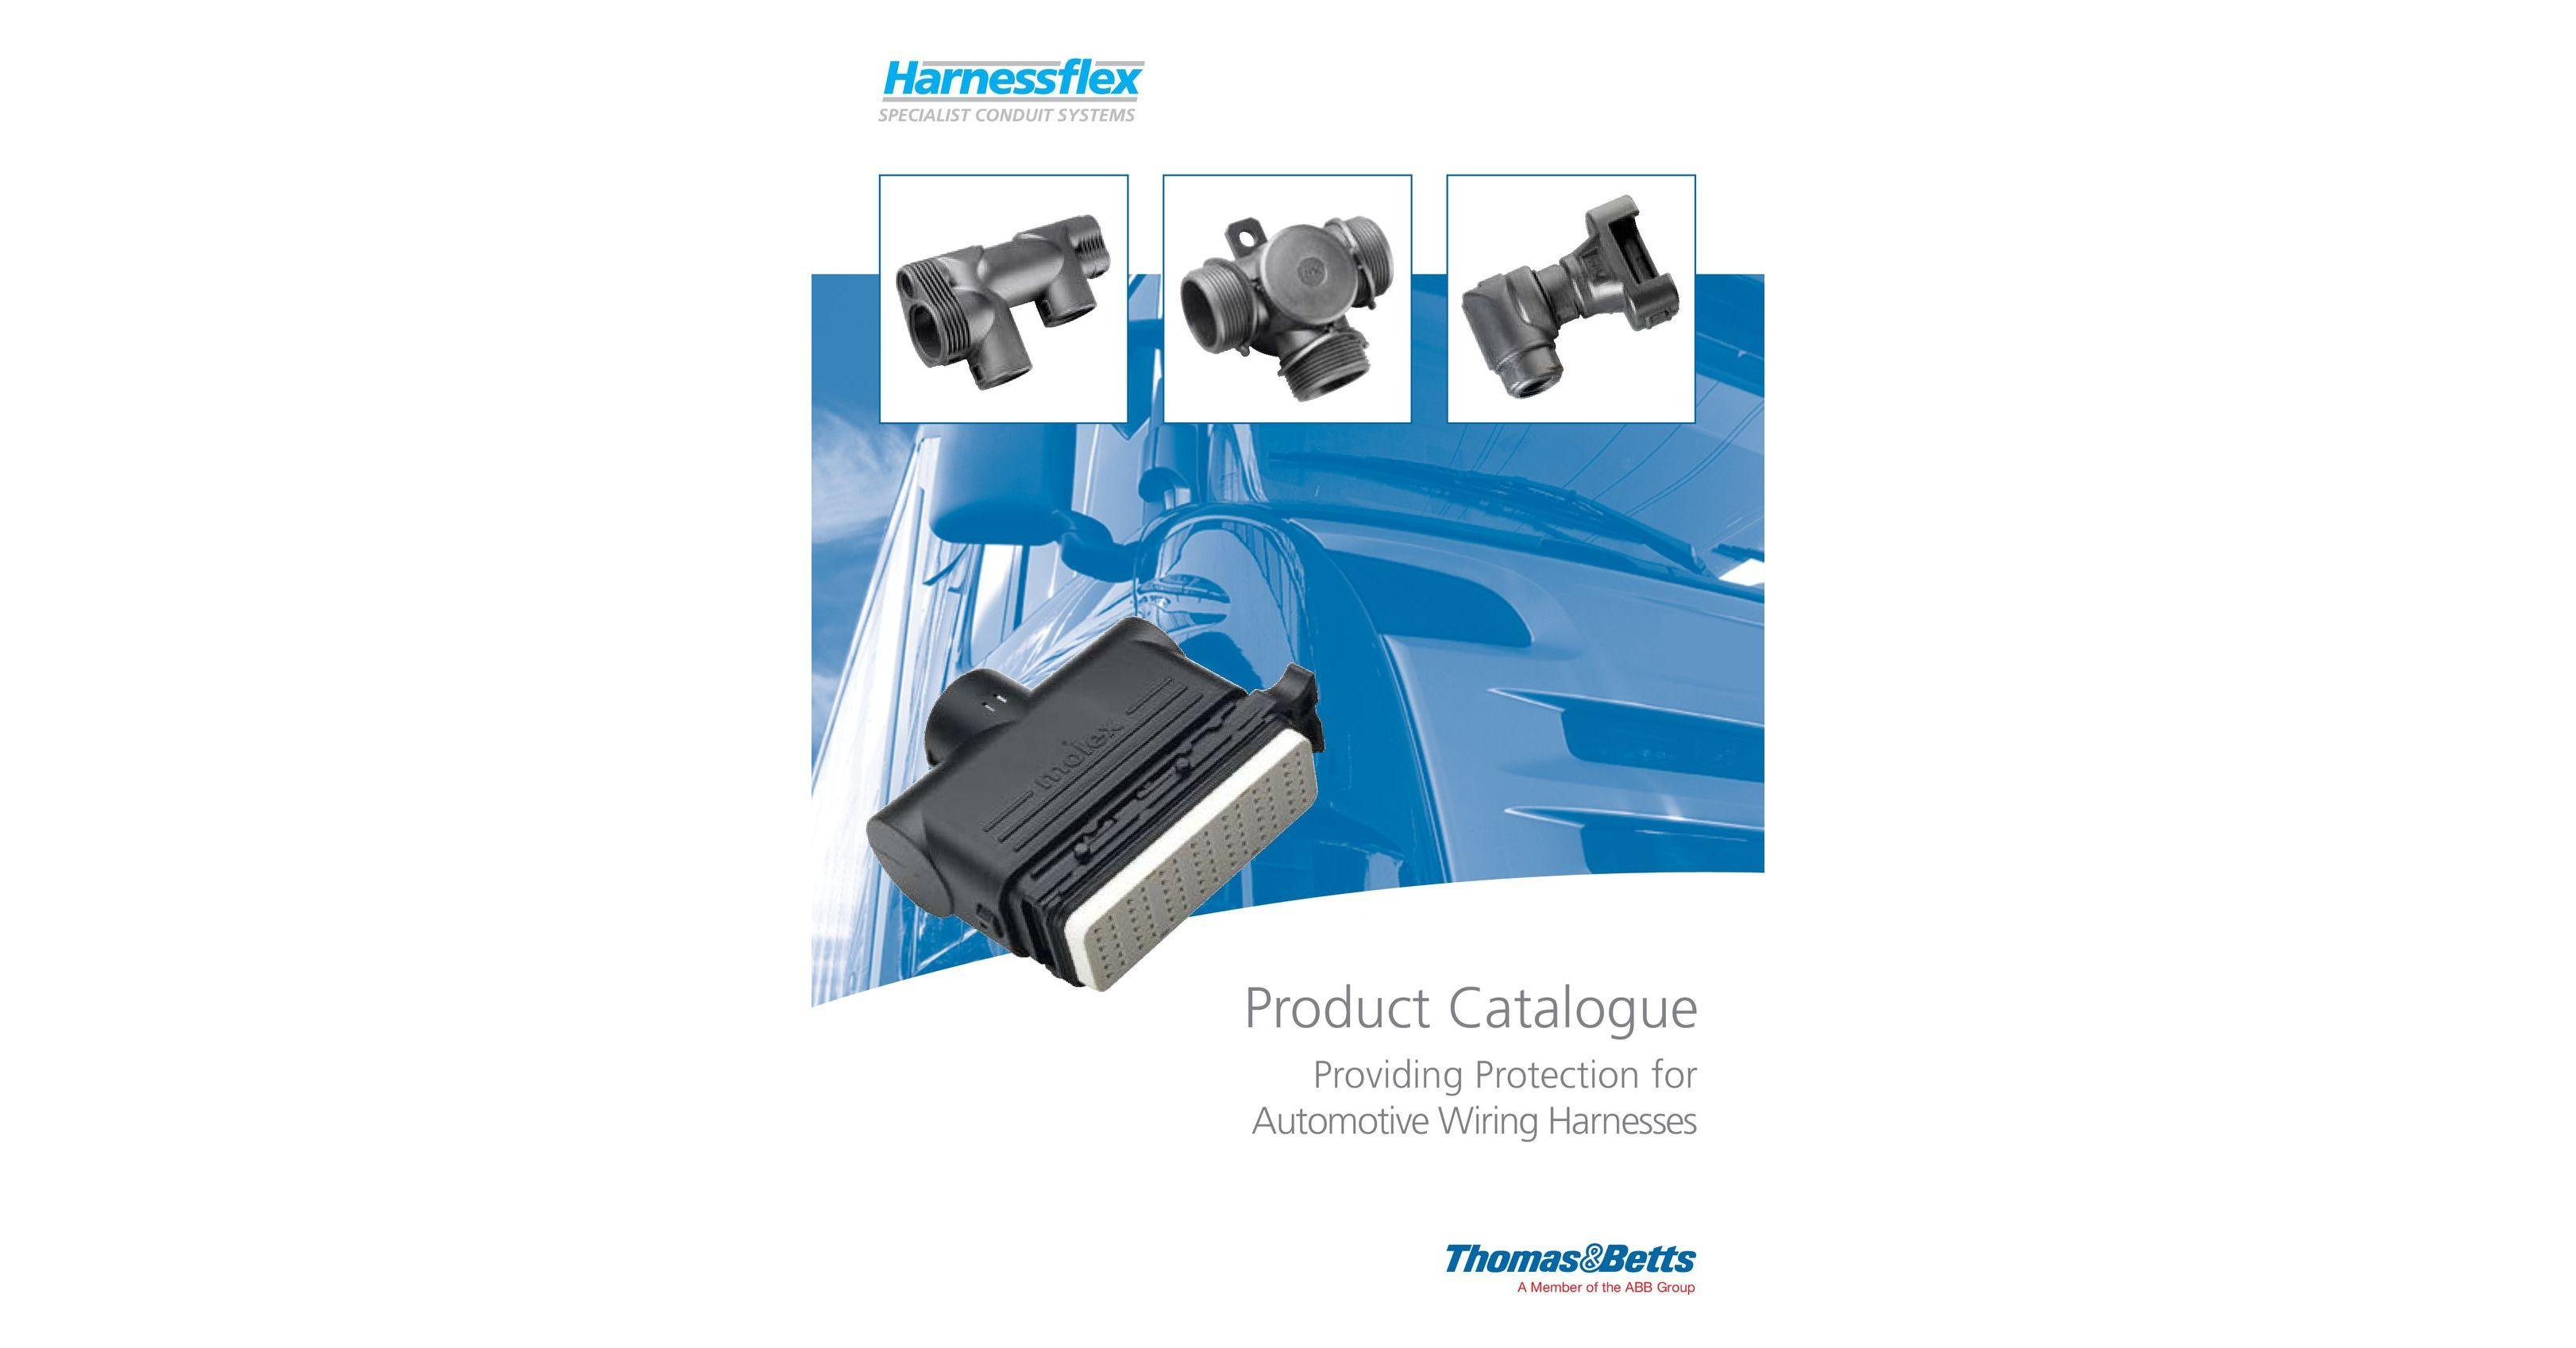 harnessflex providing protection for automotive wiring harnesses